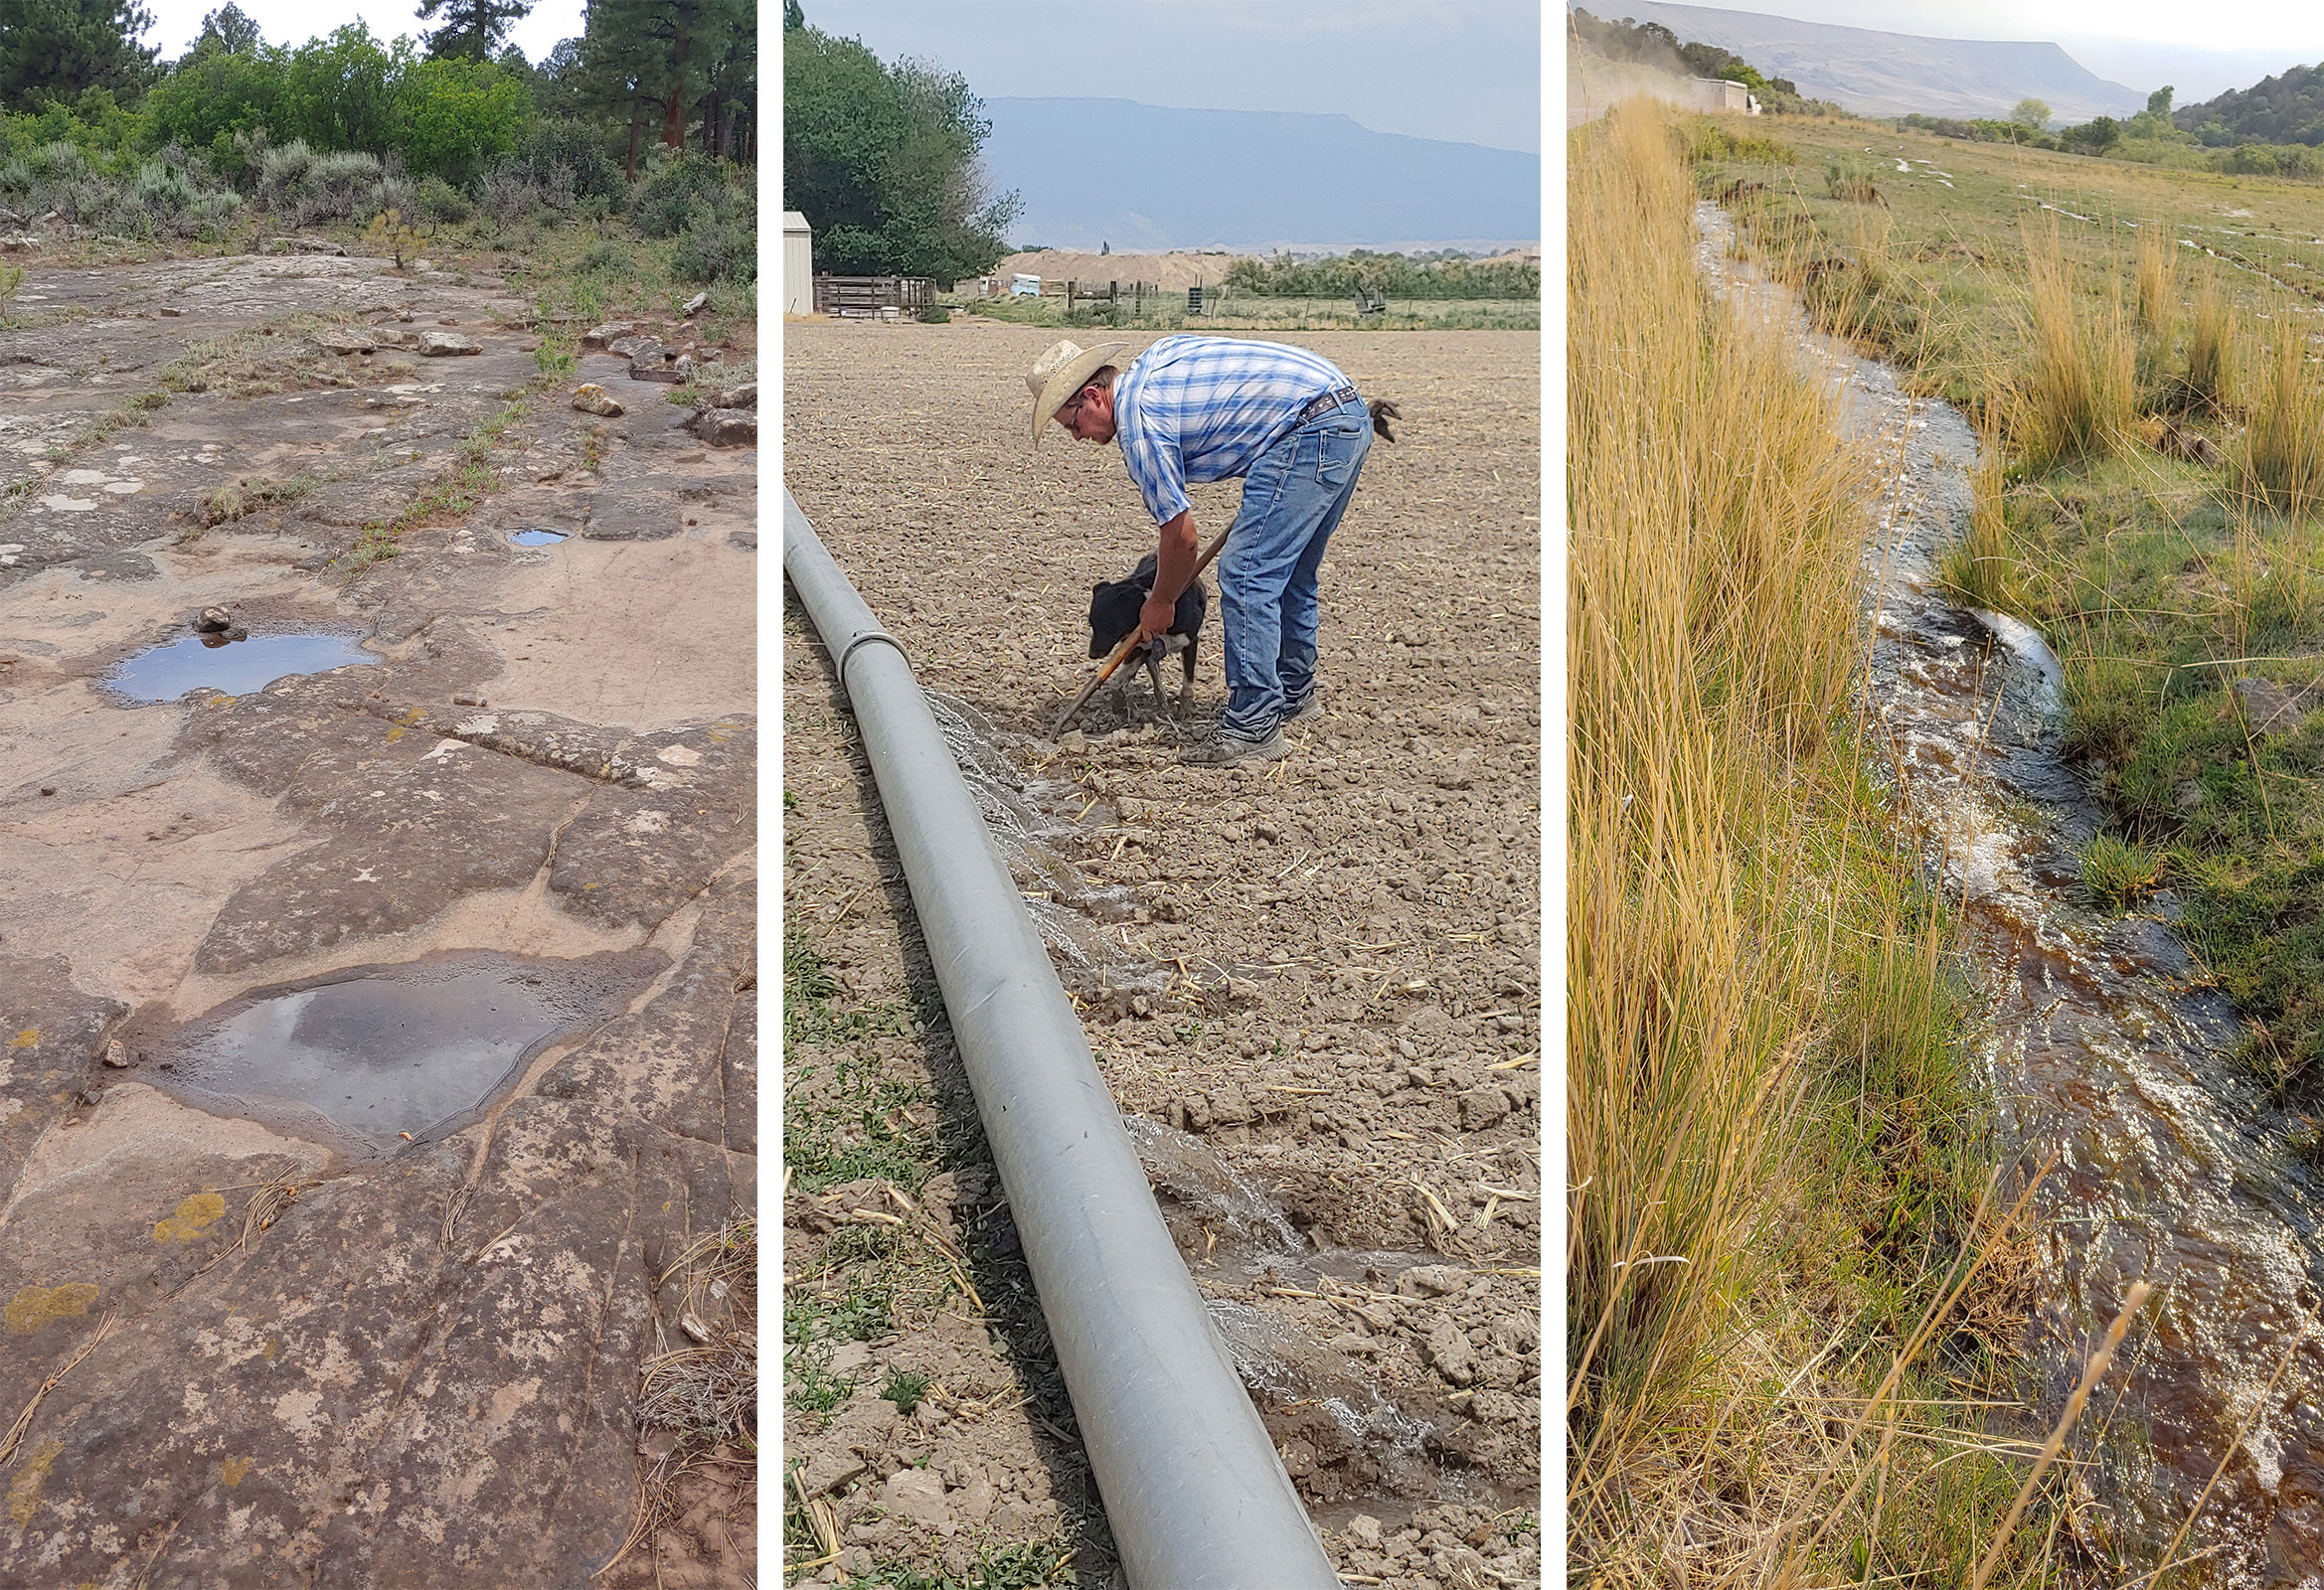 Limited irrigation water this spring in the West has put pressure on operations like those at VanWinkle Ranch.